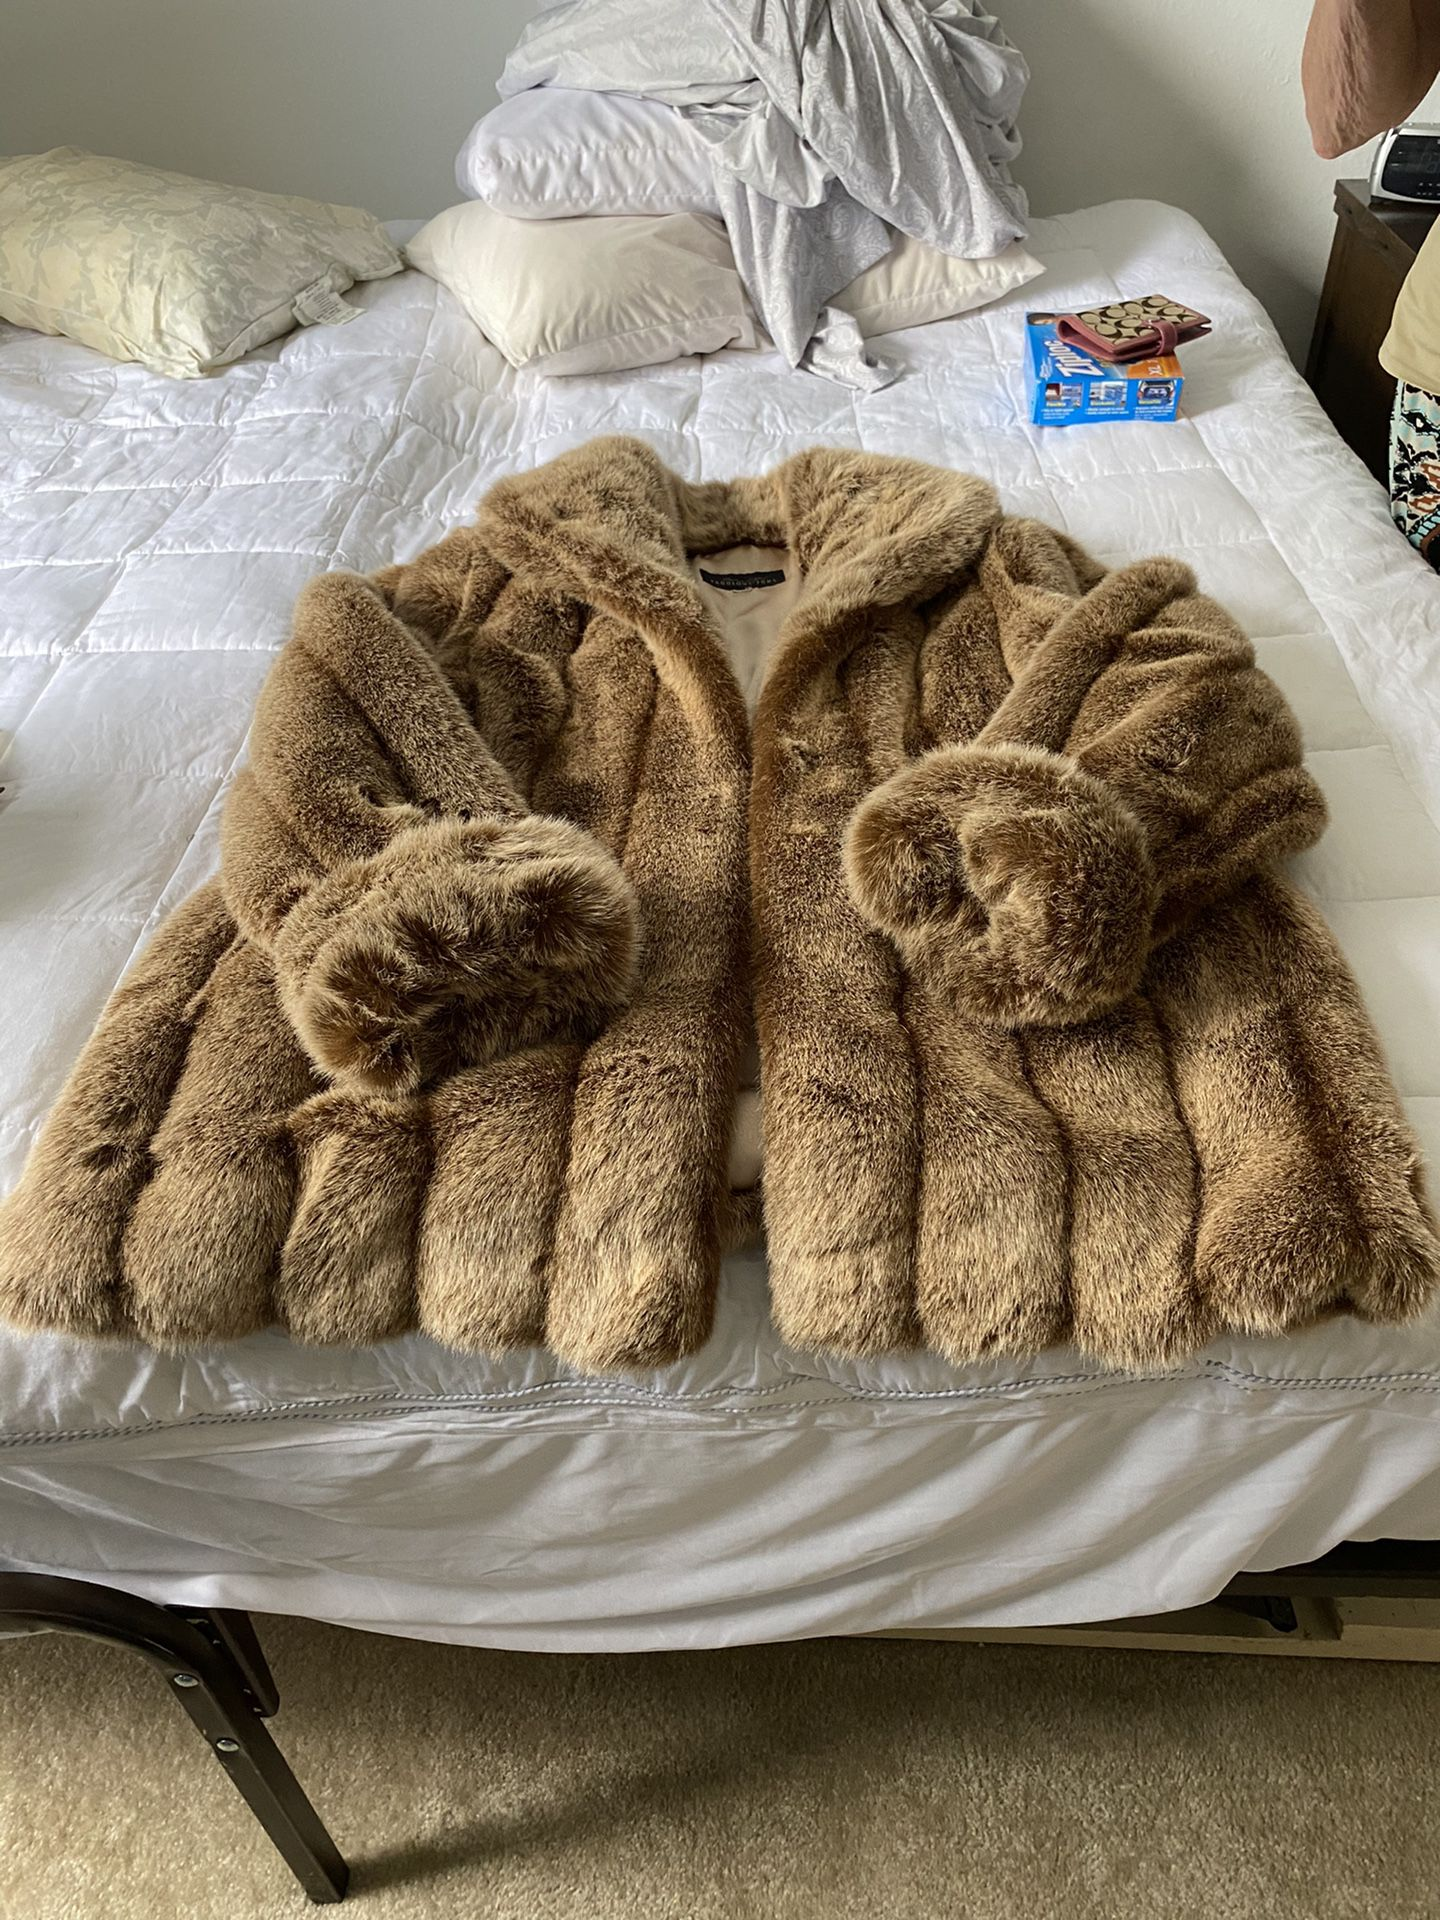 Donna Salyers (Fabulous Furs) Faux Furs Shaw Collar, 3/4 length, 16/18 sells new at $399.00. Worn only a couple times. Like new, immaculate condit